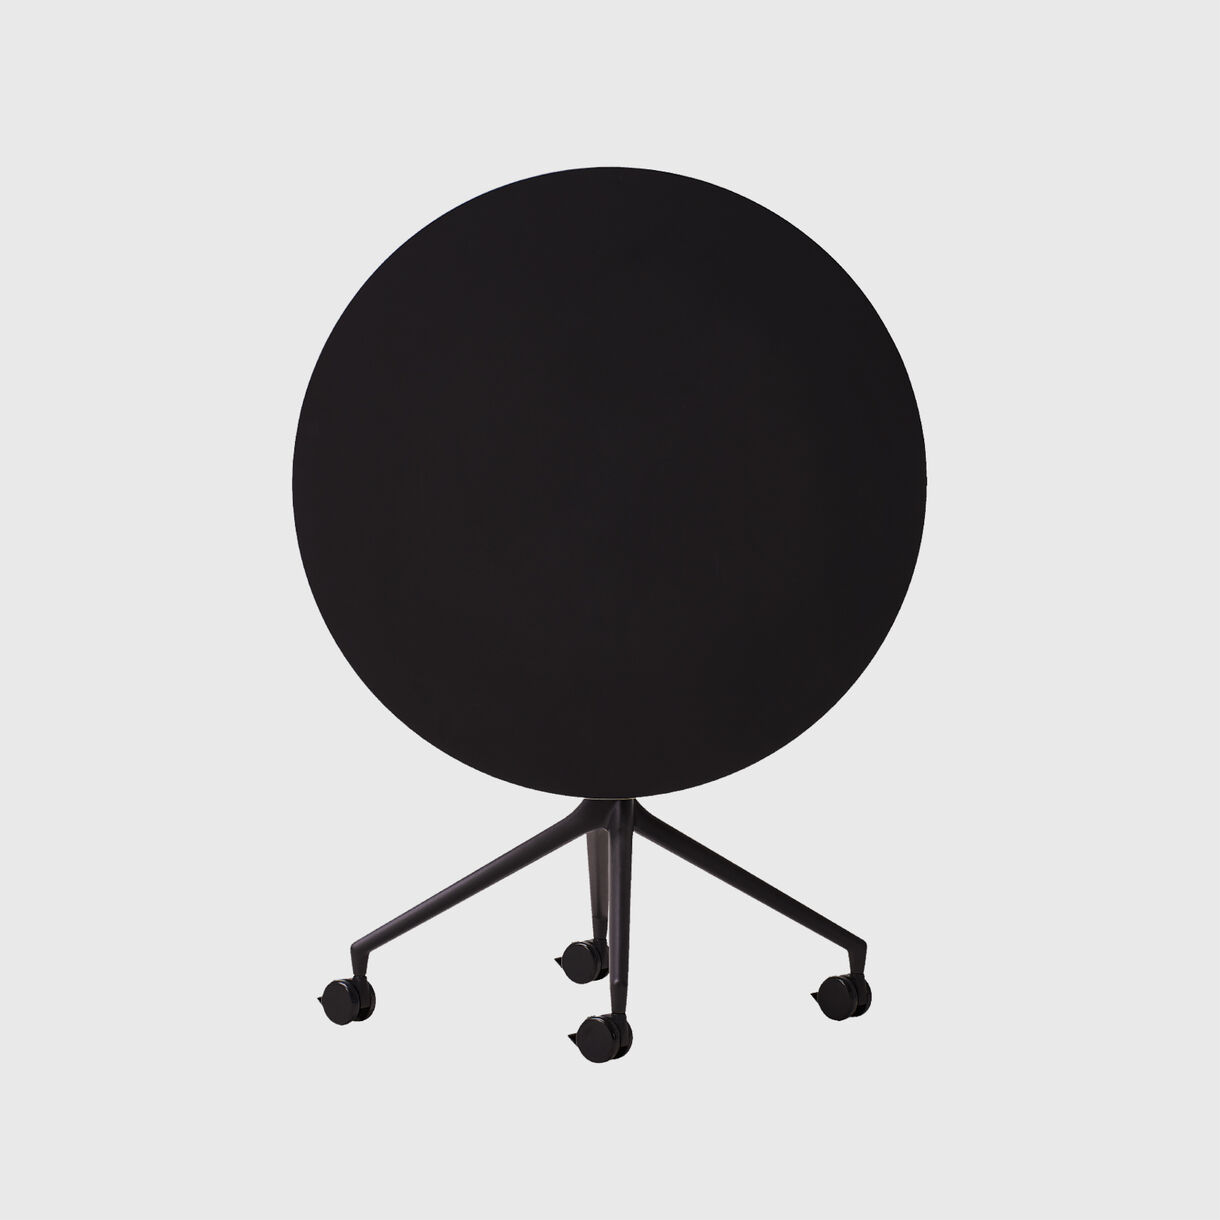 AS400 Table, Round, Black